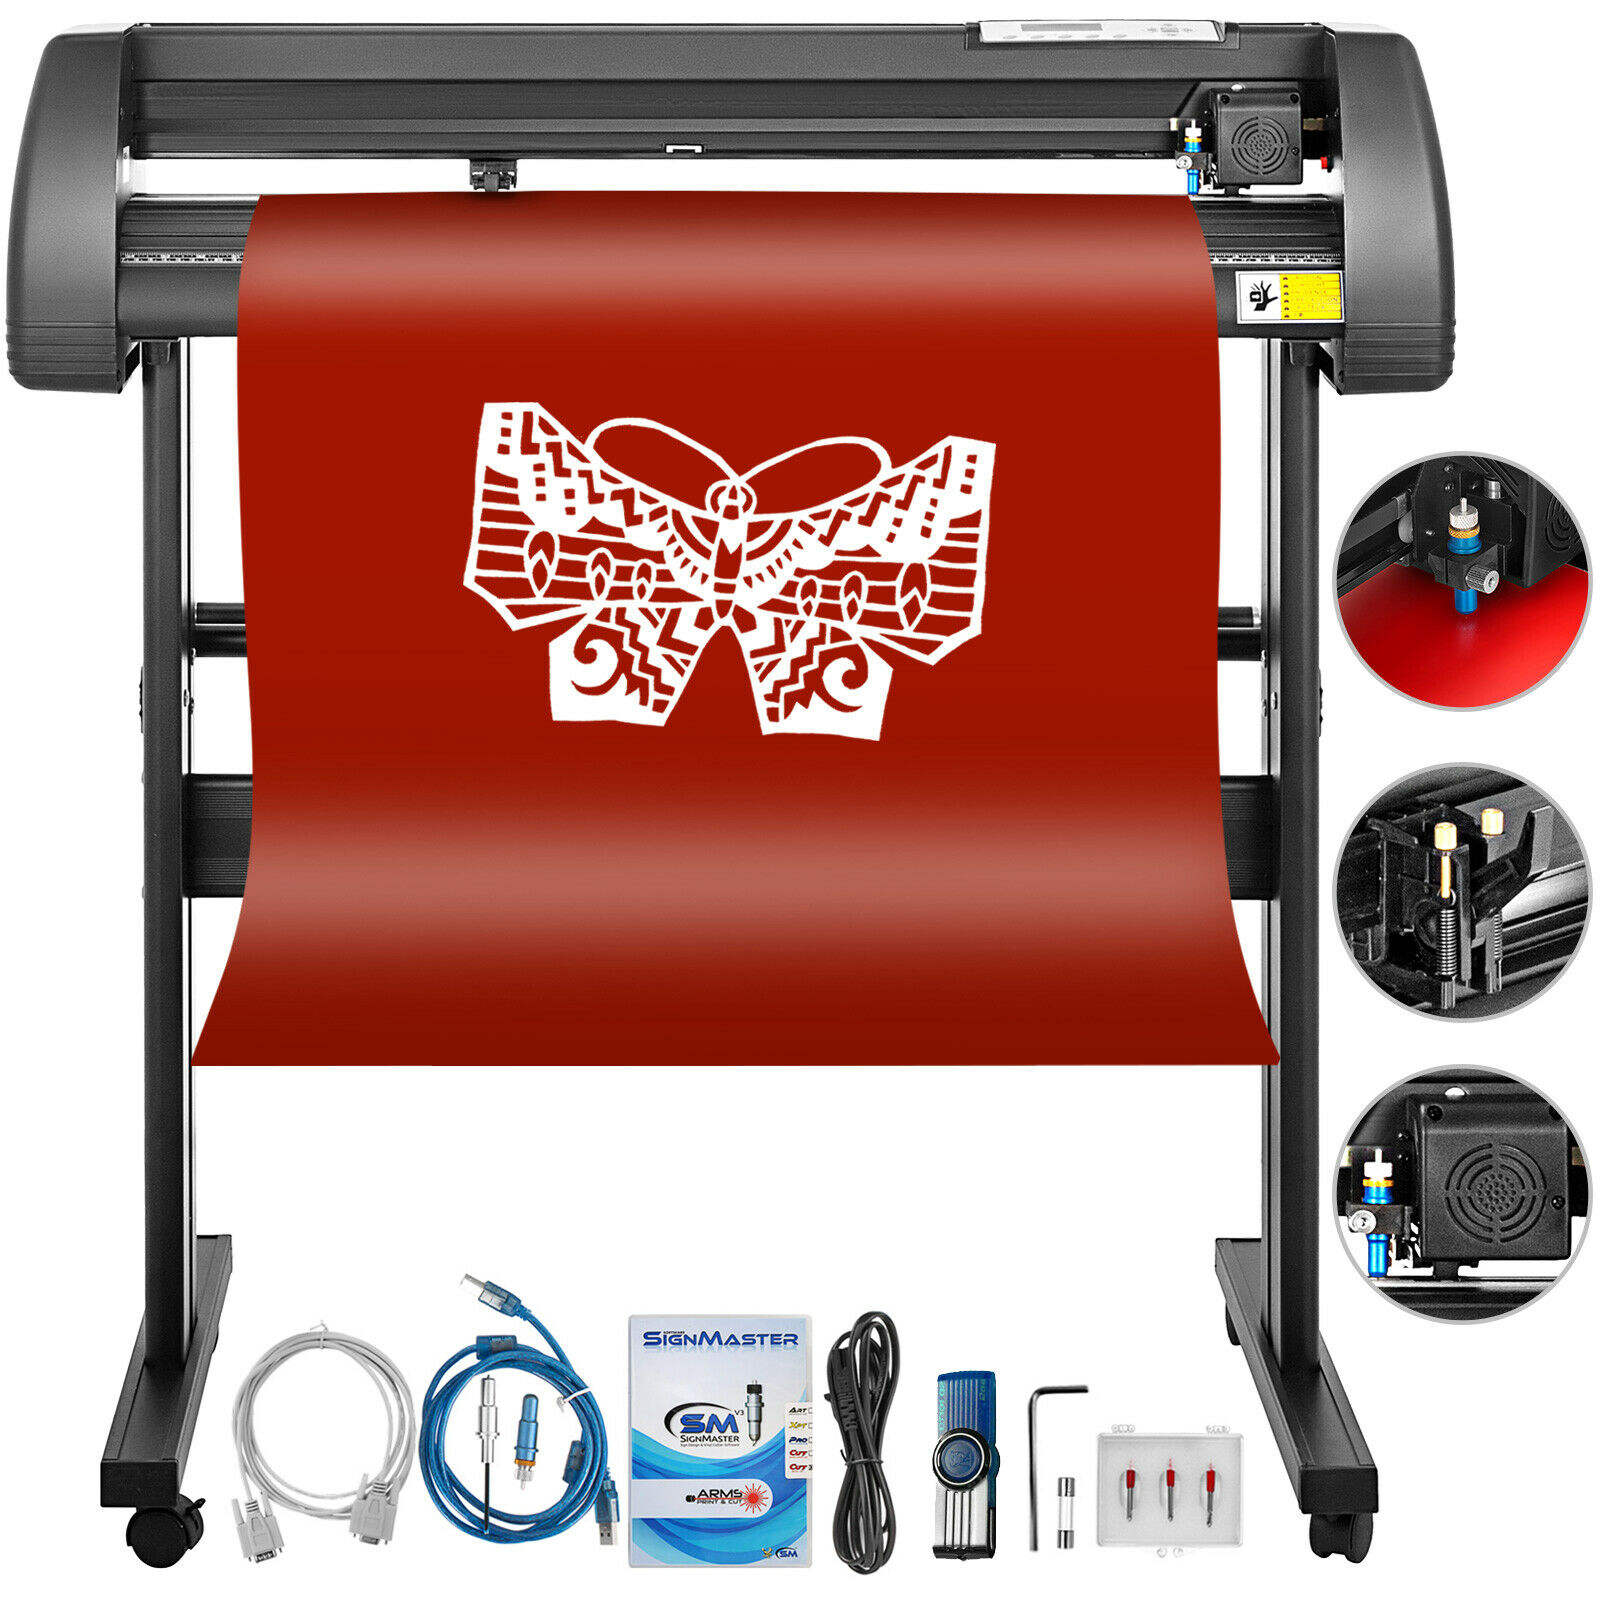 "Vinyl Cutter Plotter Vinyl Cutter Plotter Cutting 34"" Sign Sticker Making Print Software 3 Blades Usb"